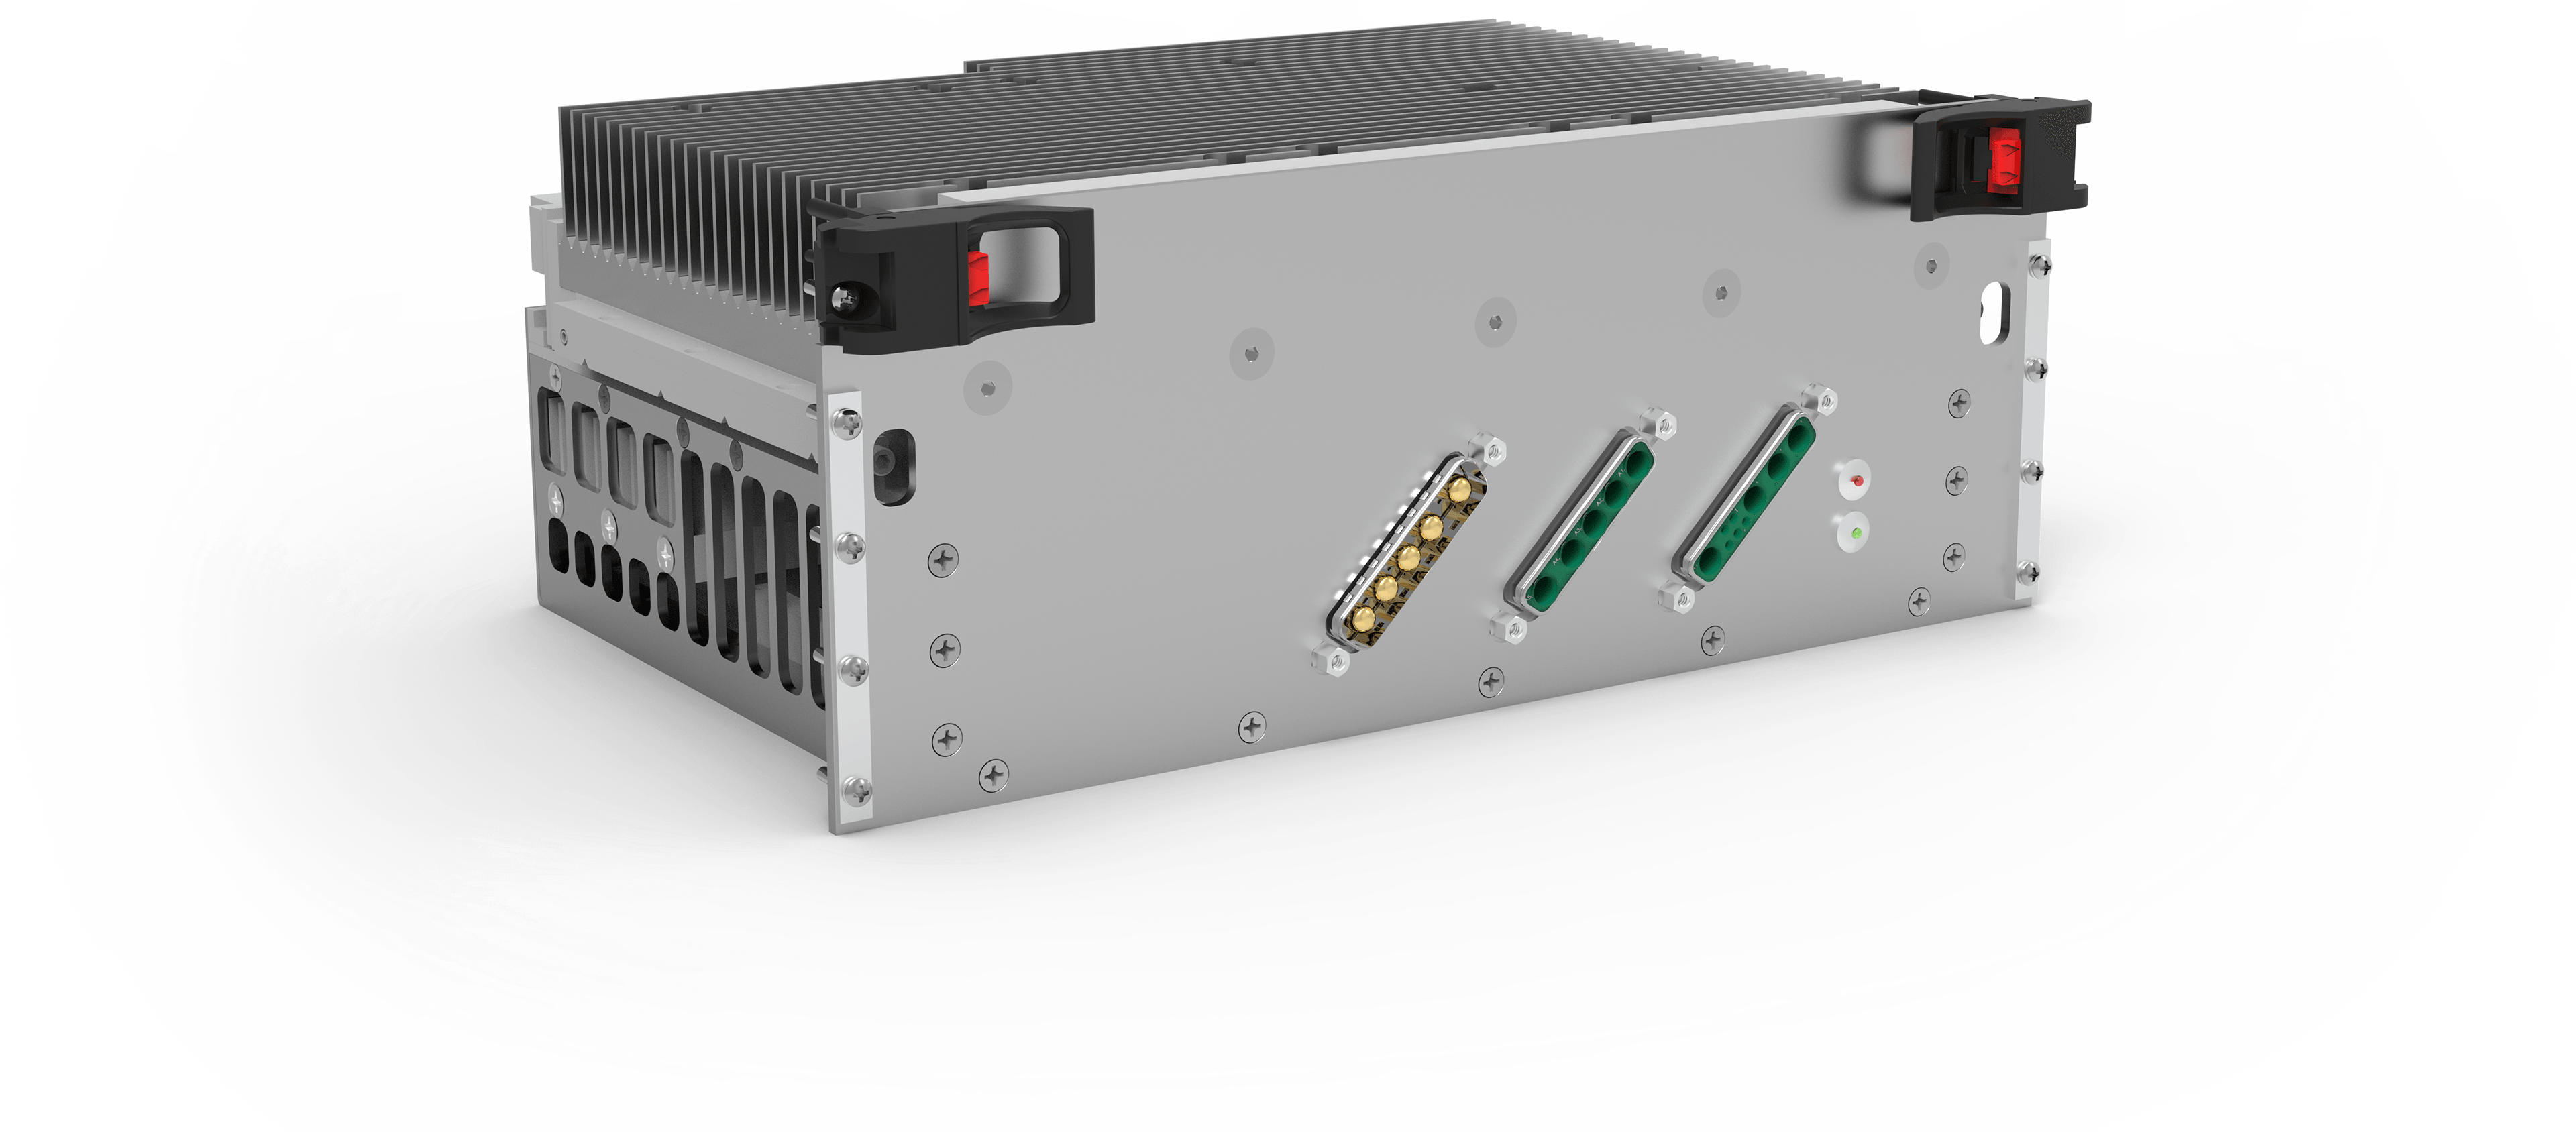 A military-grade power supply designed & Qualified by AirBorn. This unit powers avionics at high altitudes.